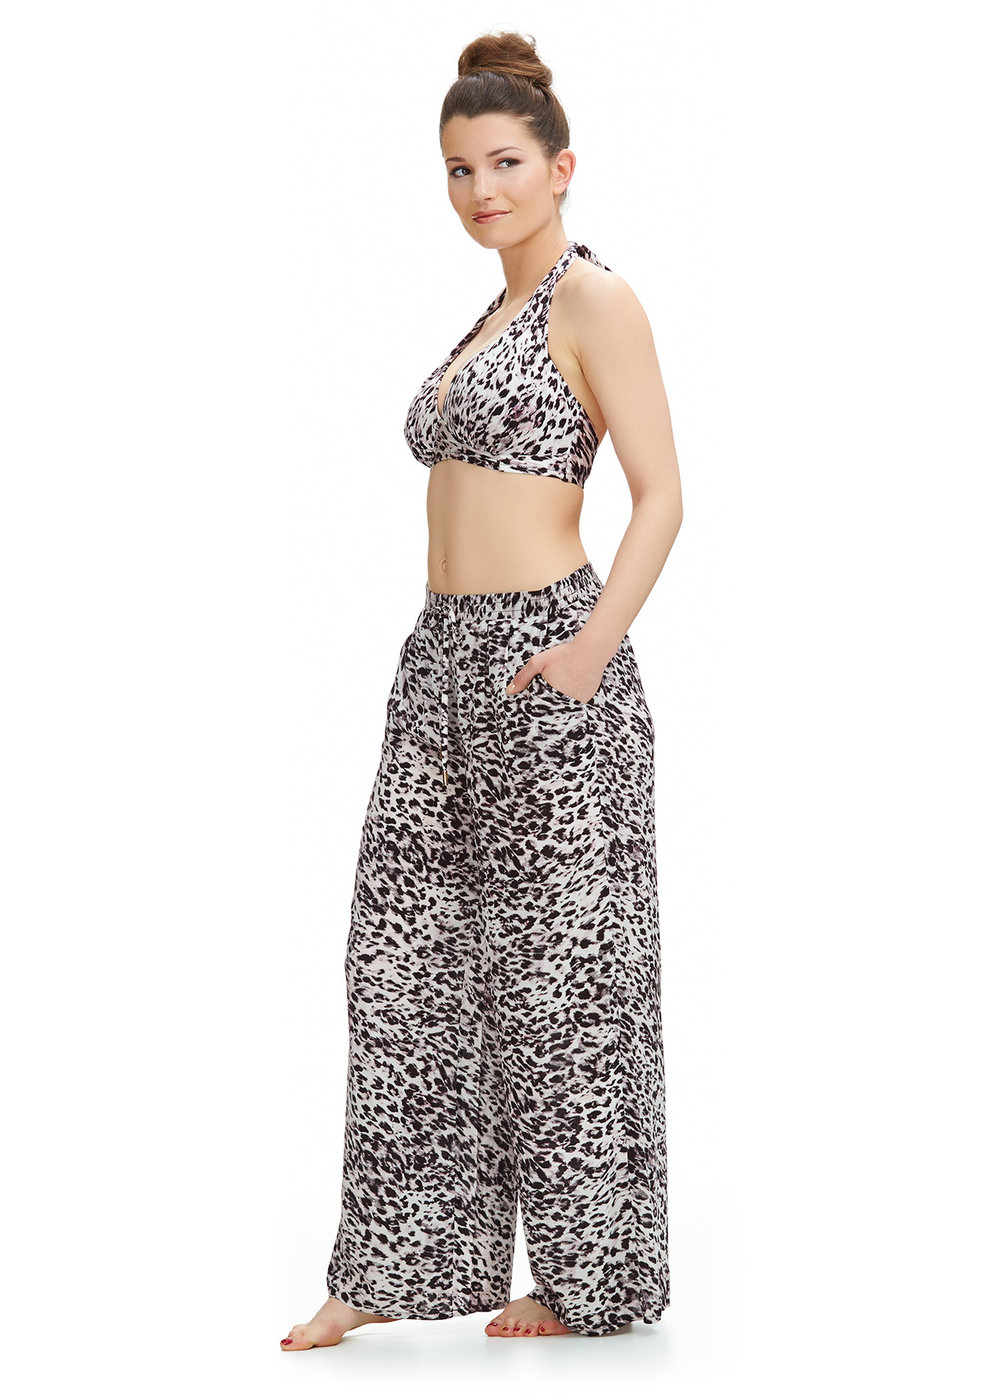 FANTASIE-SWIM-MASAI-MARA-BLACK-SOFT-TRIANGLE-BIKINI-TOP-FS6304-PALAZZO-PANTS-FS6310-S-TRADE-WEB-HS17.jpg